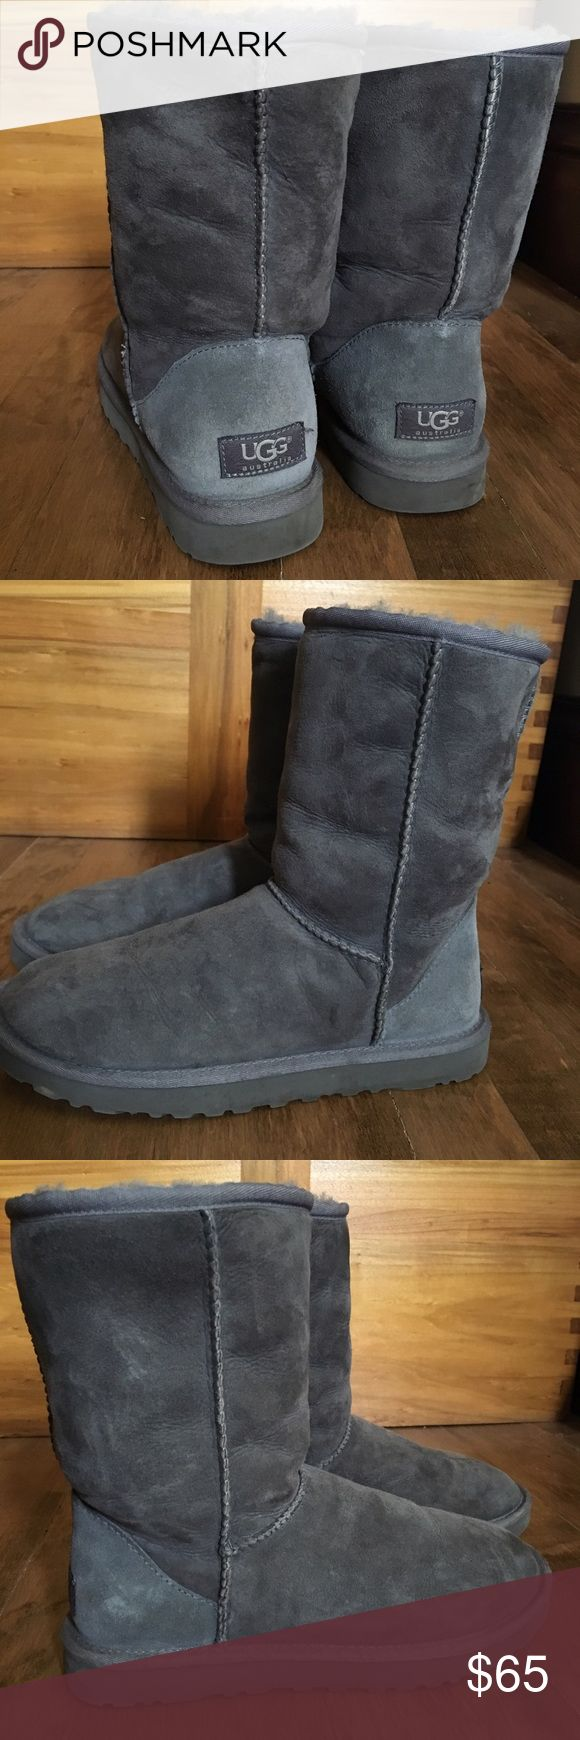 * SOLD * UGG Classic Short Boot in Gray Gray UGG classic short boots in excellent used condition,  Hardly ever wore these, the inside fleece is still in beautiful soft condition. No holes, stains, or burns.  These are beautiful I just do not wear them enough.  ❣ UGG Shoes Winter & Rain Boots